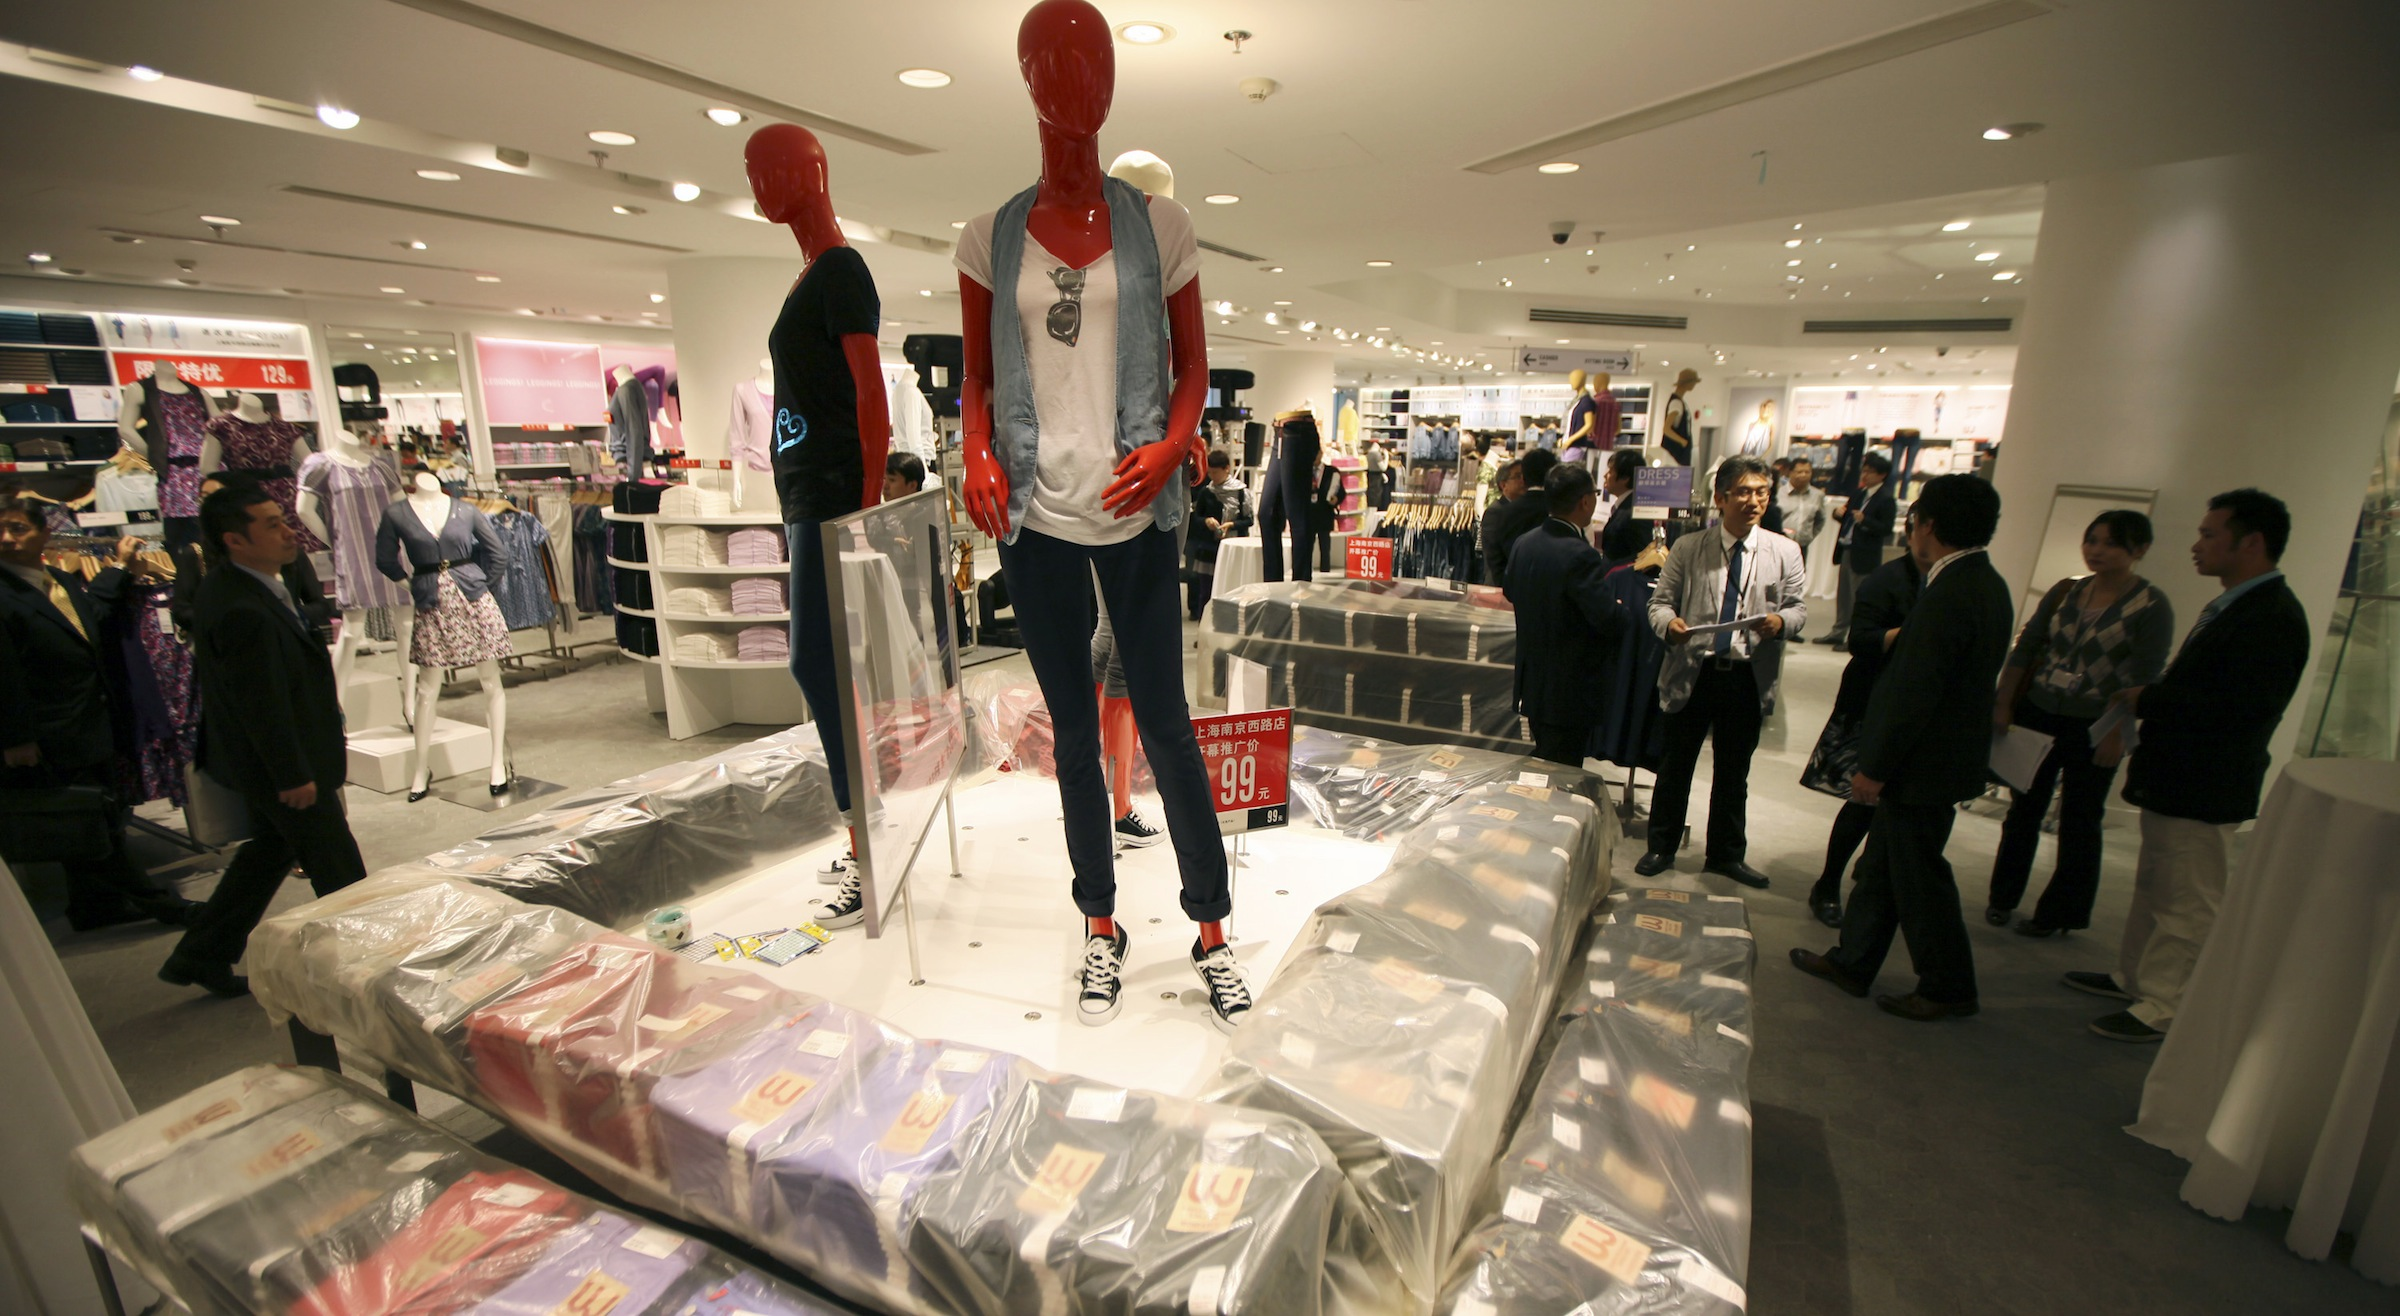 Guests look around interior of the largest global flagship store of Uniqlo Thursday, May 13, 2010 in Shanghai, China. The UNIQLO Shanghai Global Flagship Store will open on May 15 officially. (AP Photo/Eugene Hoshiko)